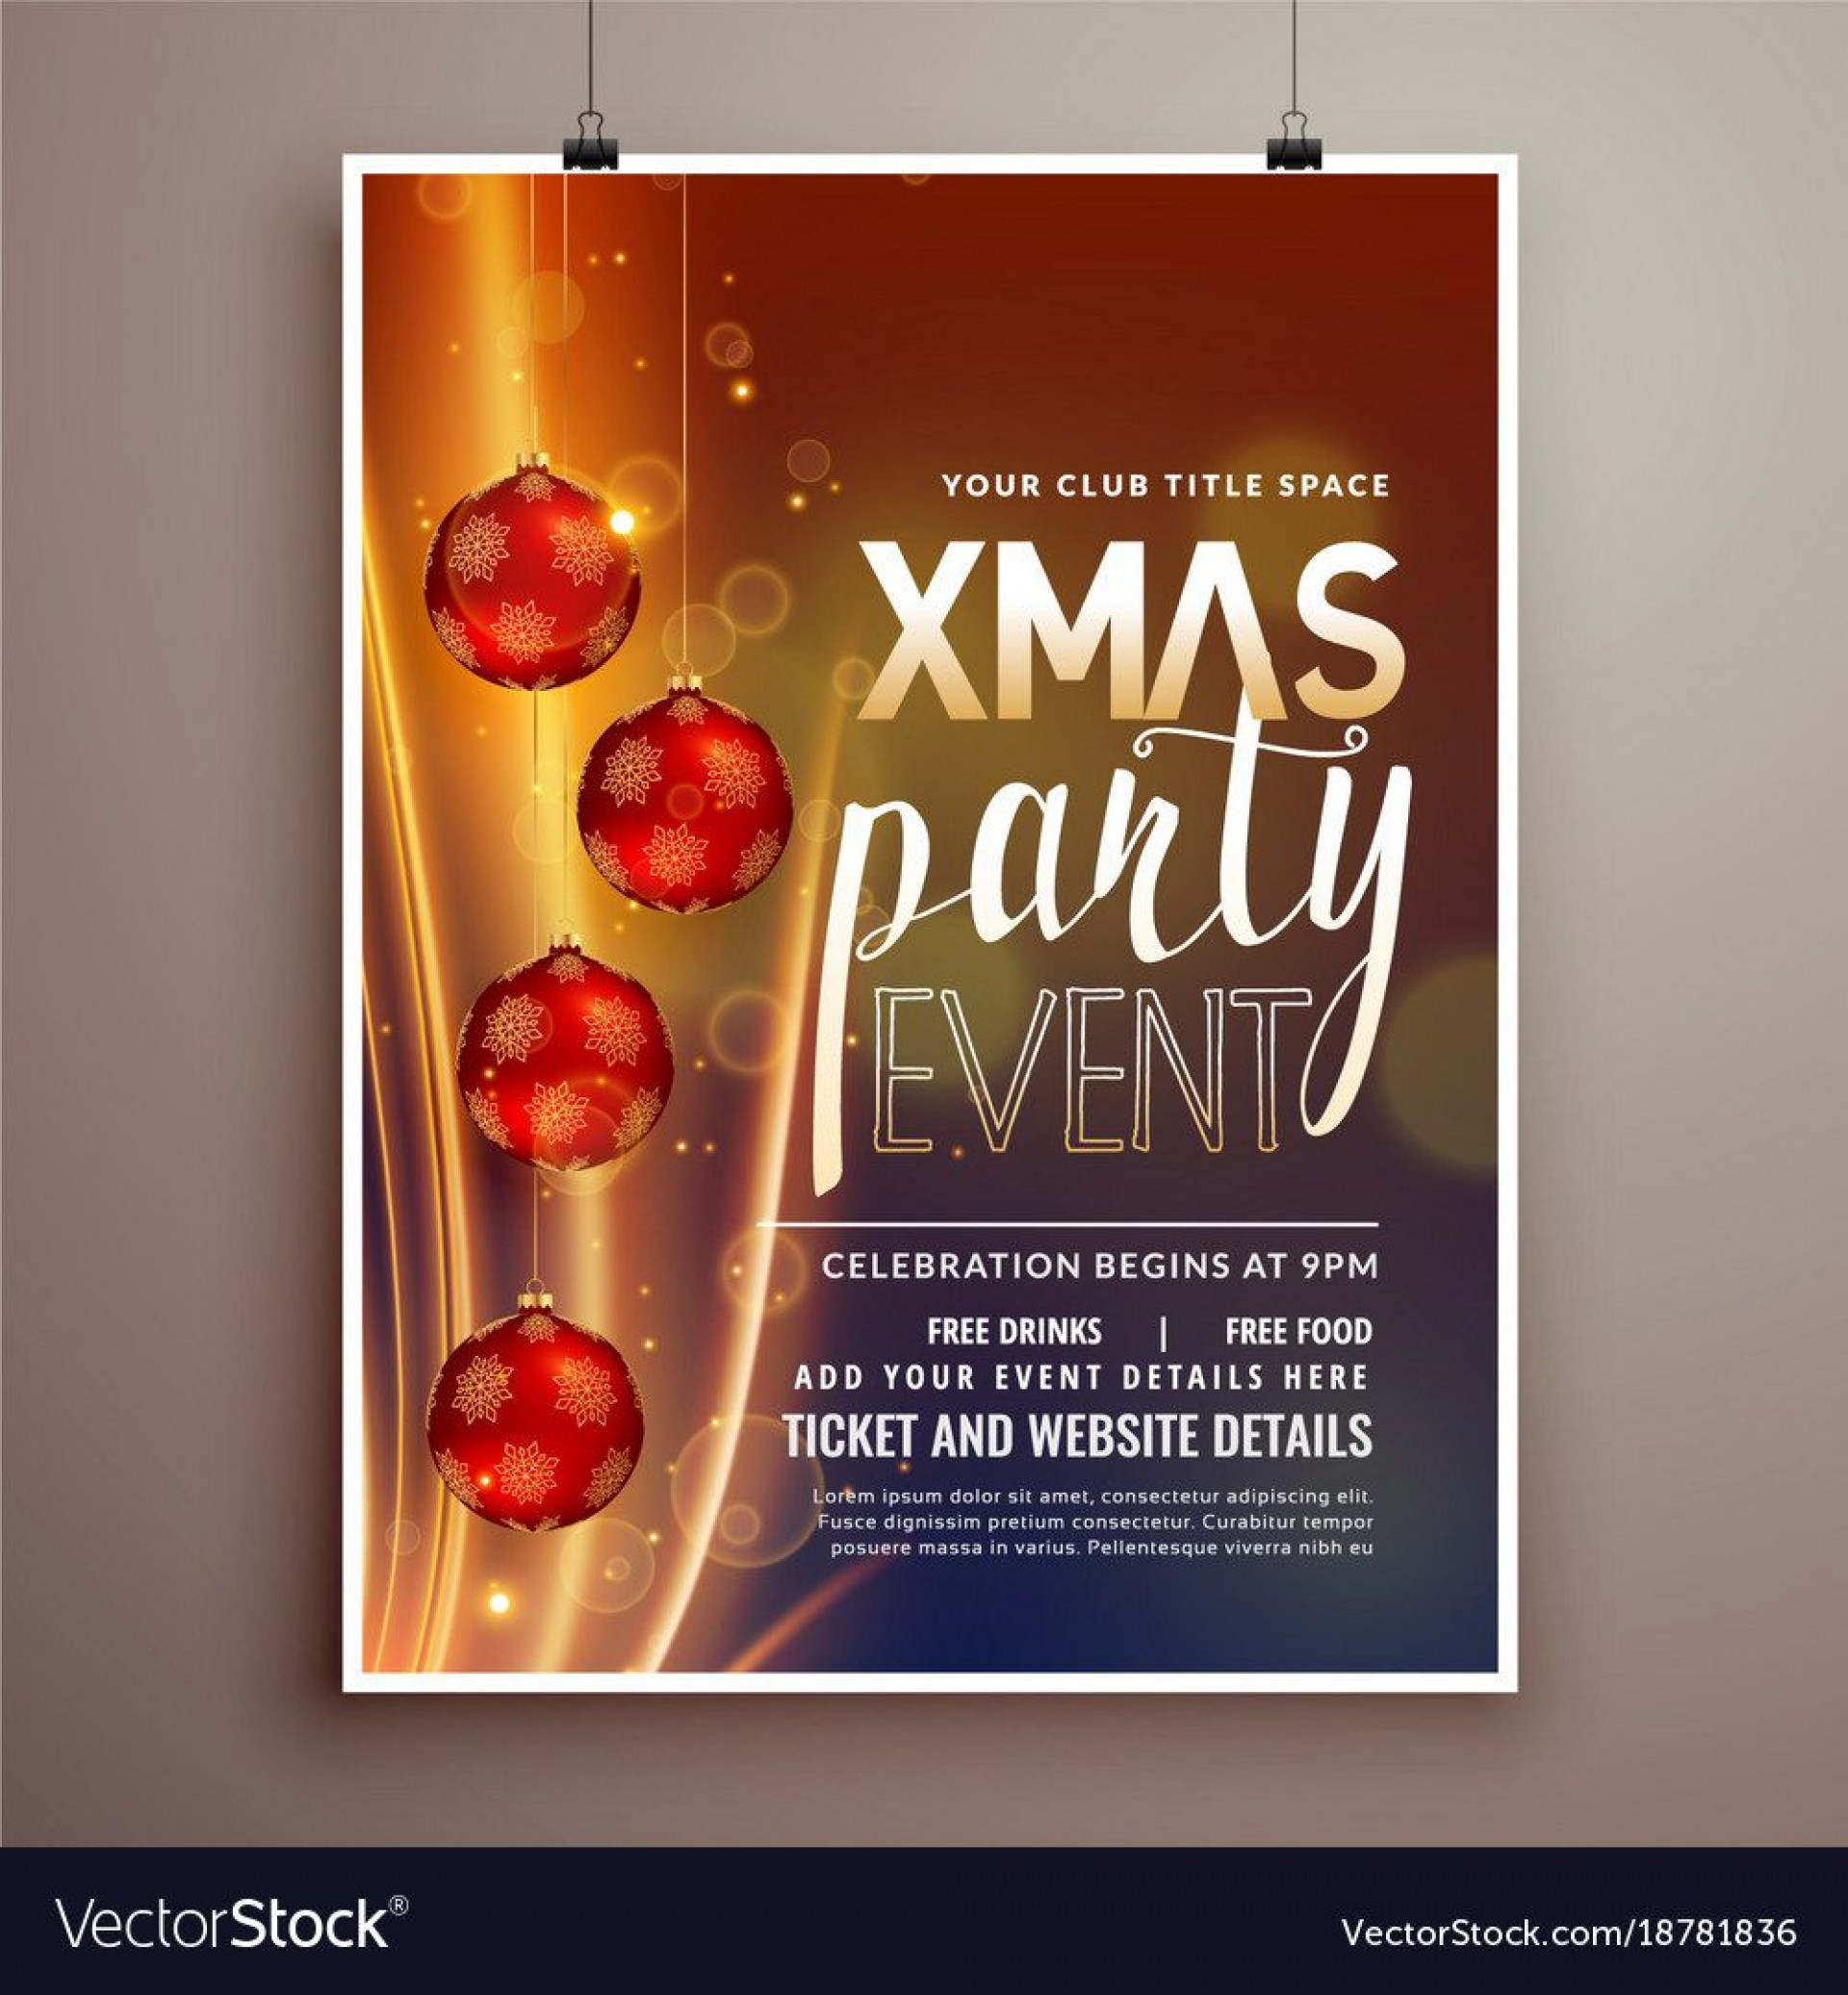 002 Archaicawful Holiday Party Flyer Template Free High Definition  Office1920